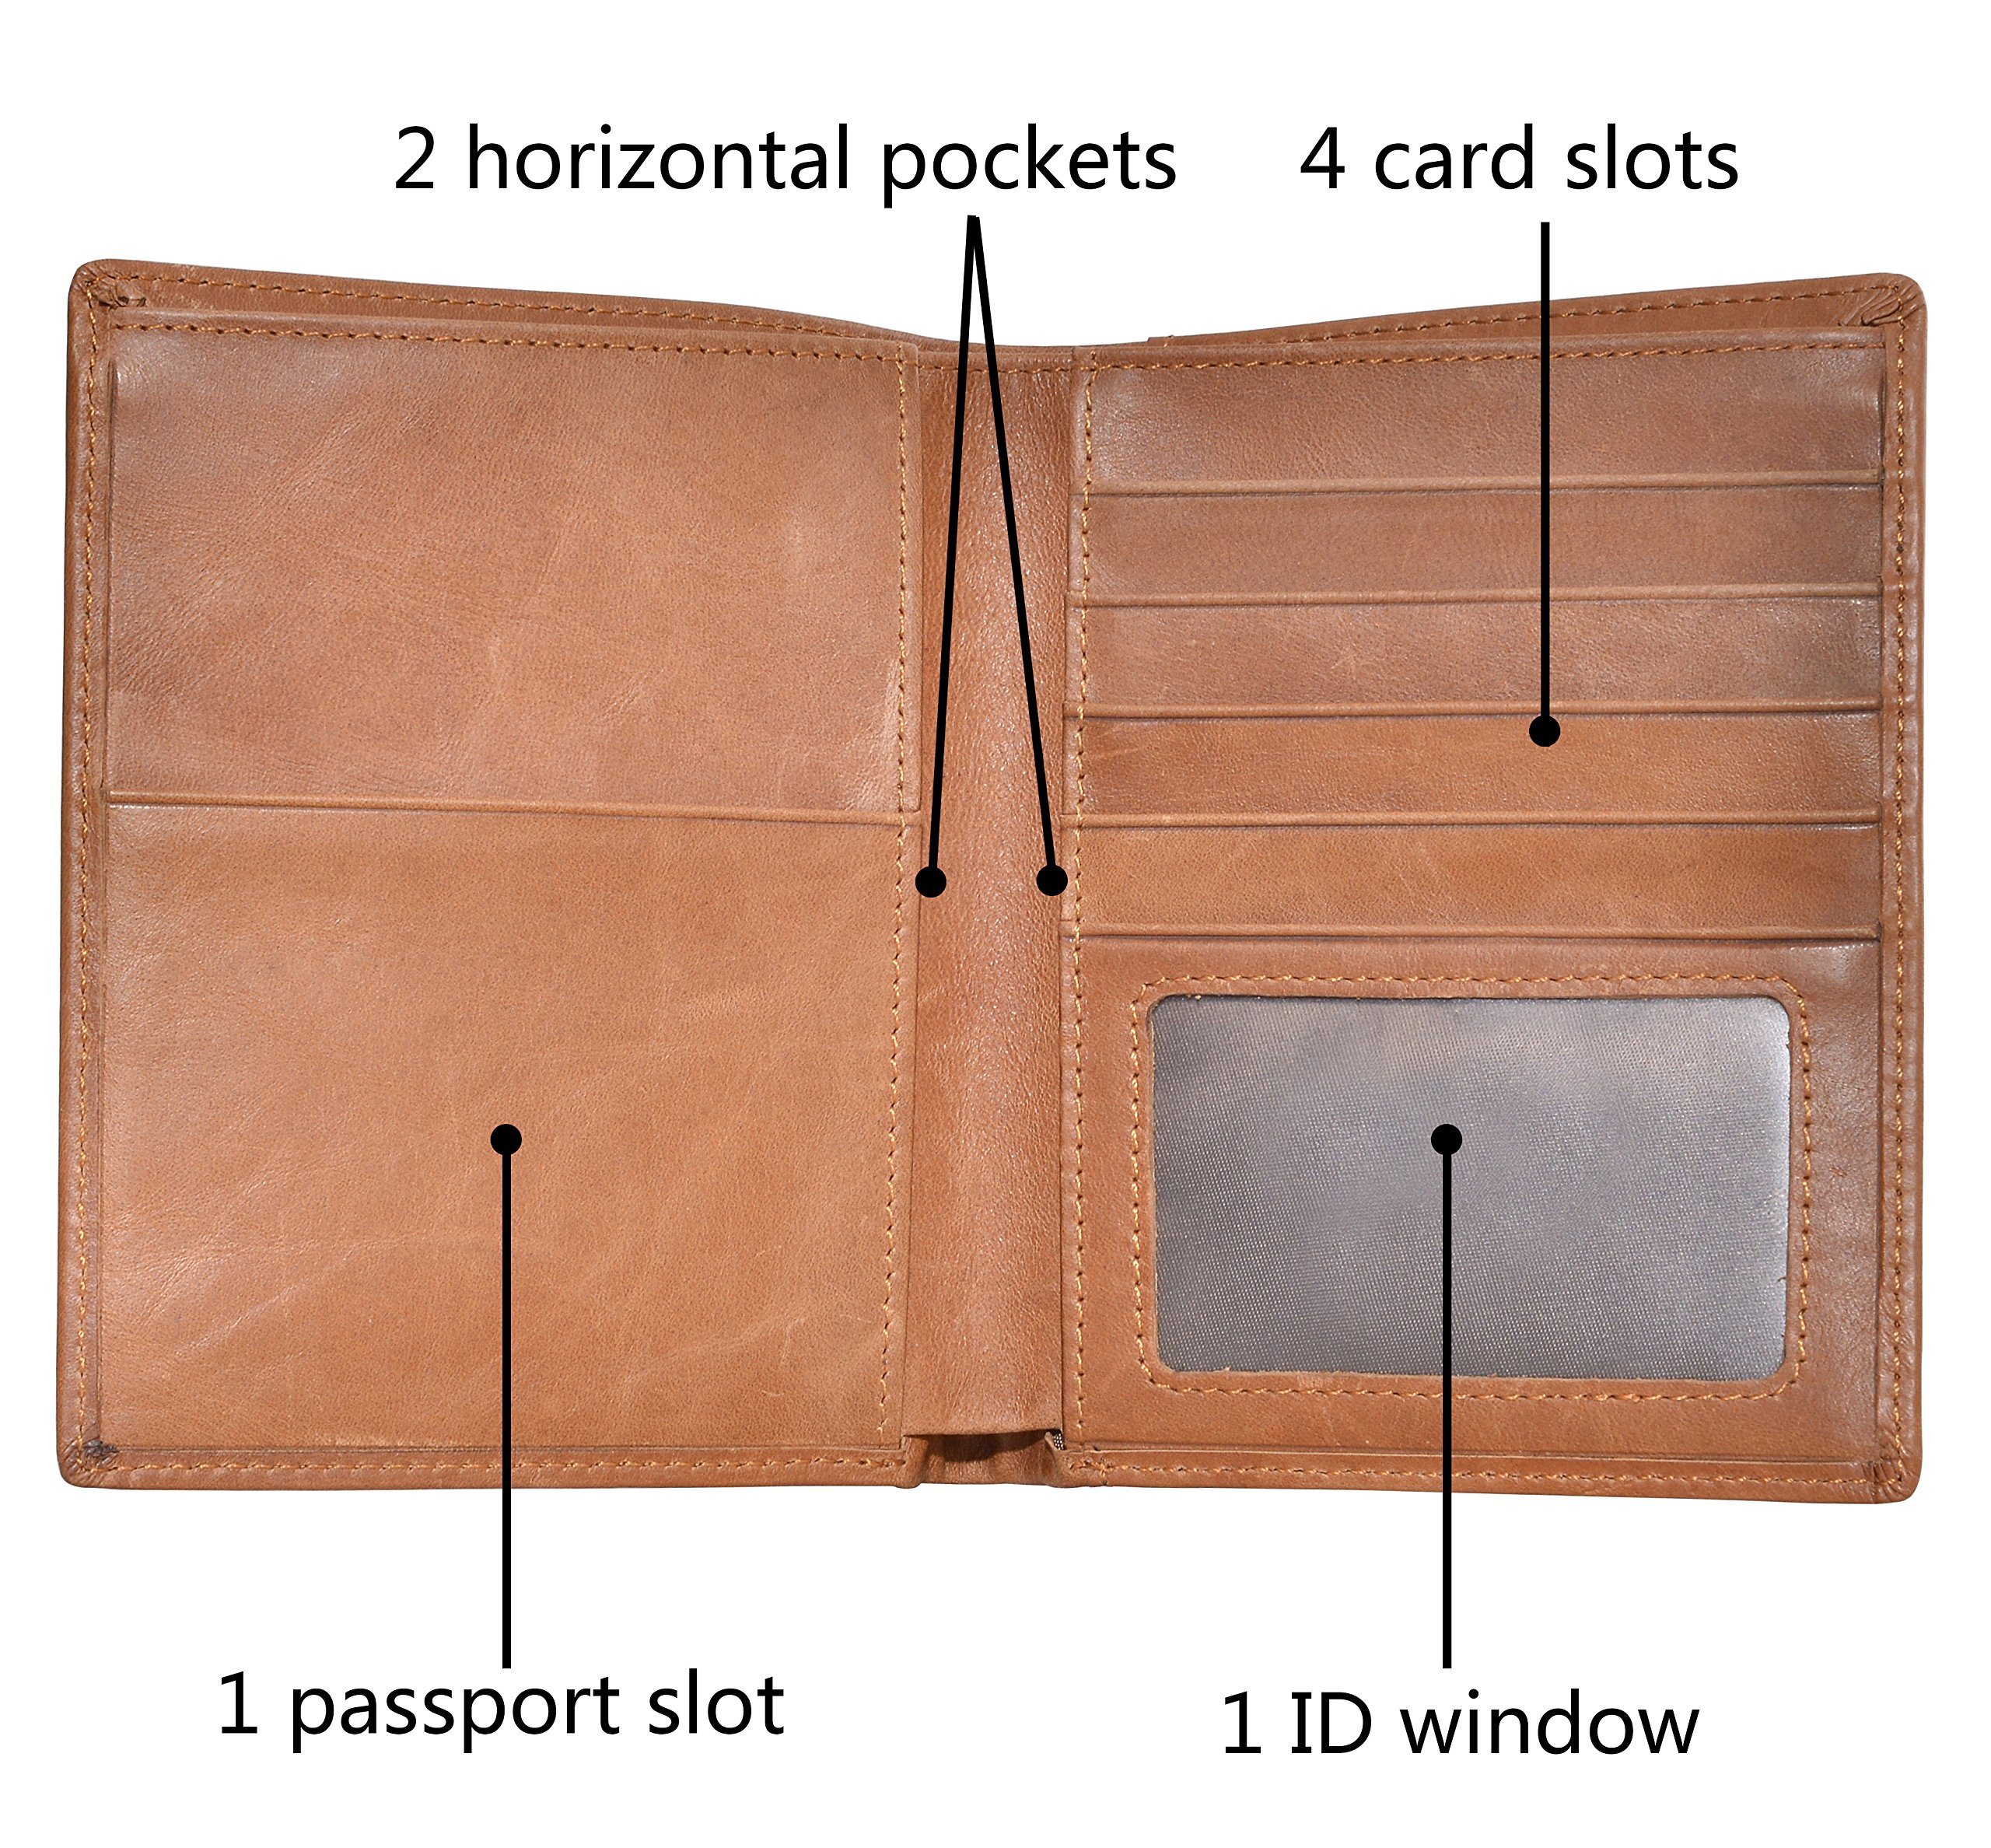 Outrip Genuine Leather Passport Wallet RFID Blocking Travel Card/Passport Holder (Brown) by Outrip (Image #4)